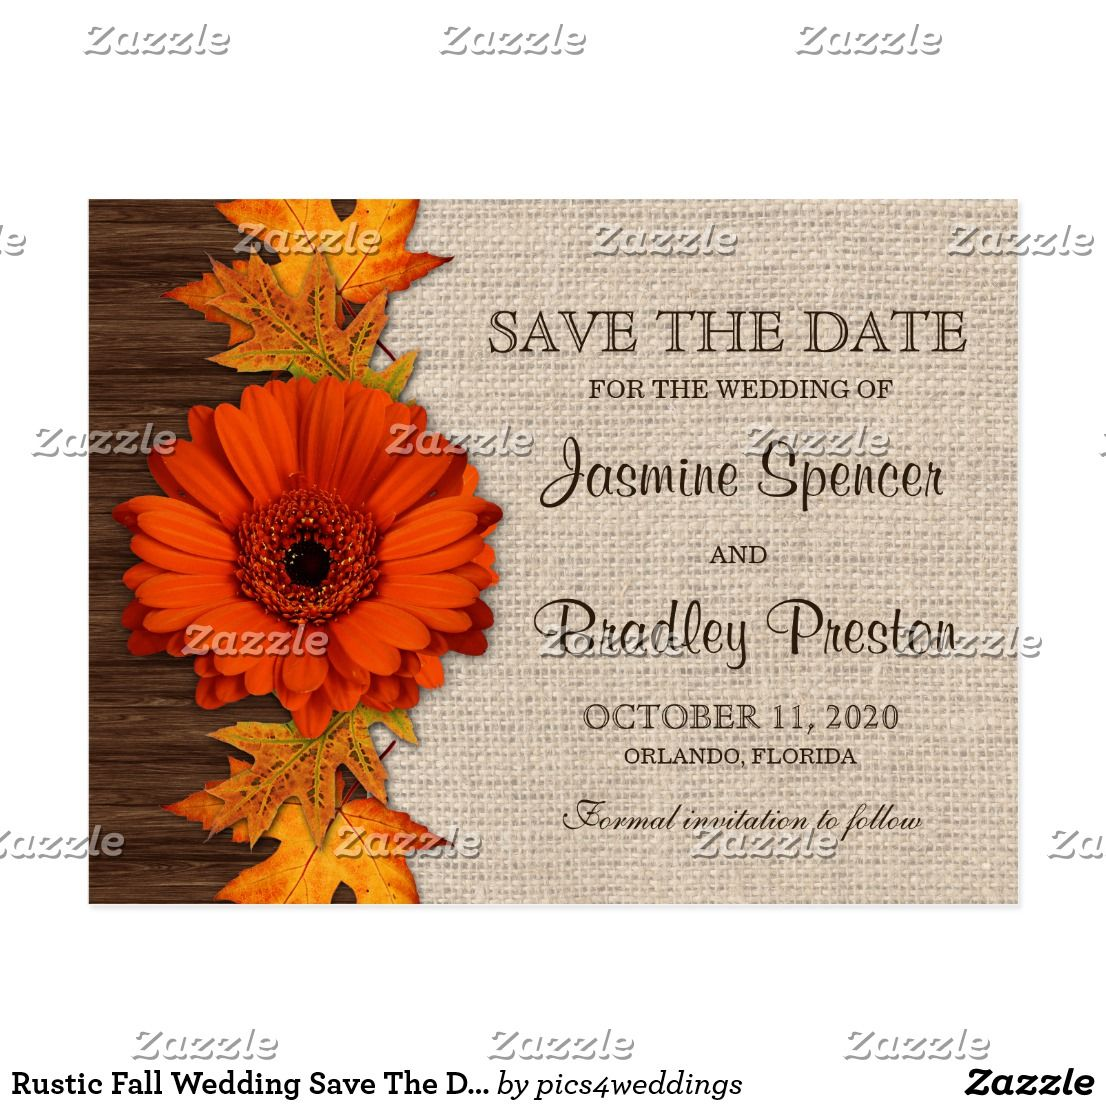 Rustic Fall Wedding Save The Date Templates Postcard | Return ...